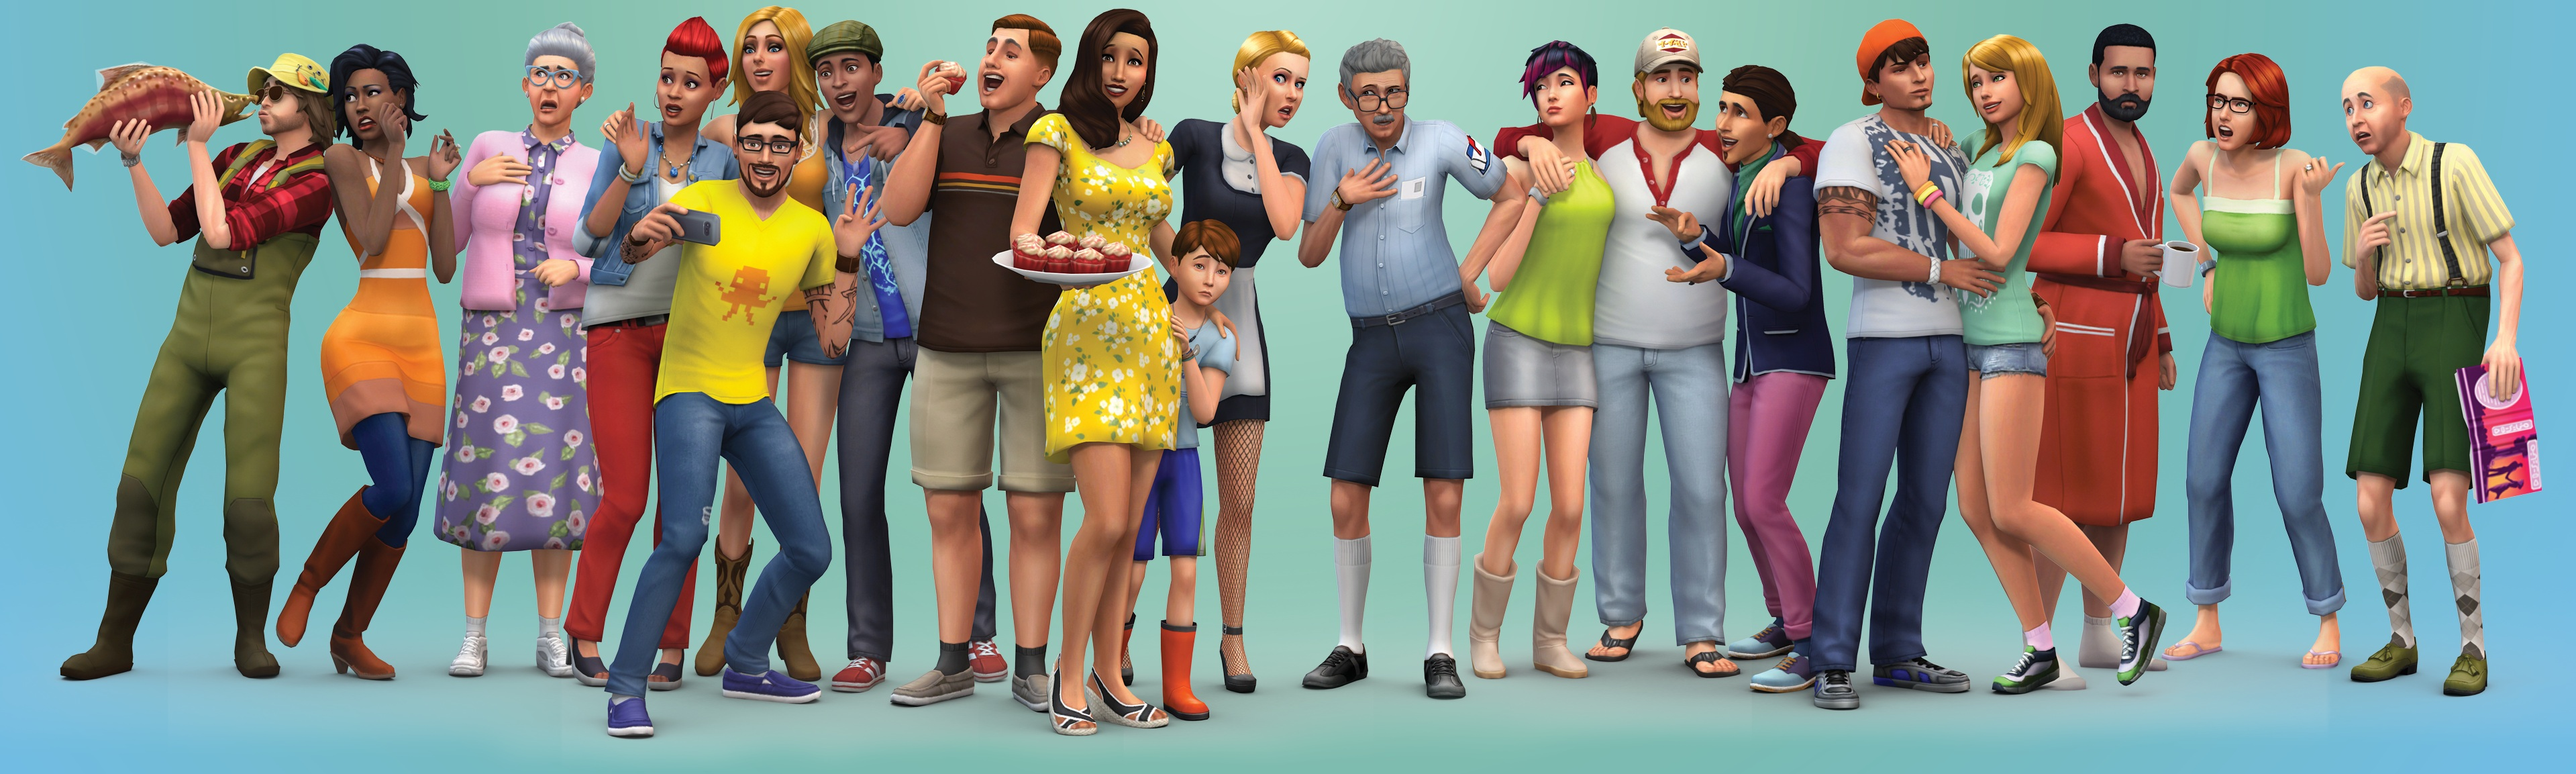 E3 2014: Maxis Shows Off The Sims 4 Build Mode and